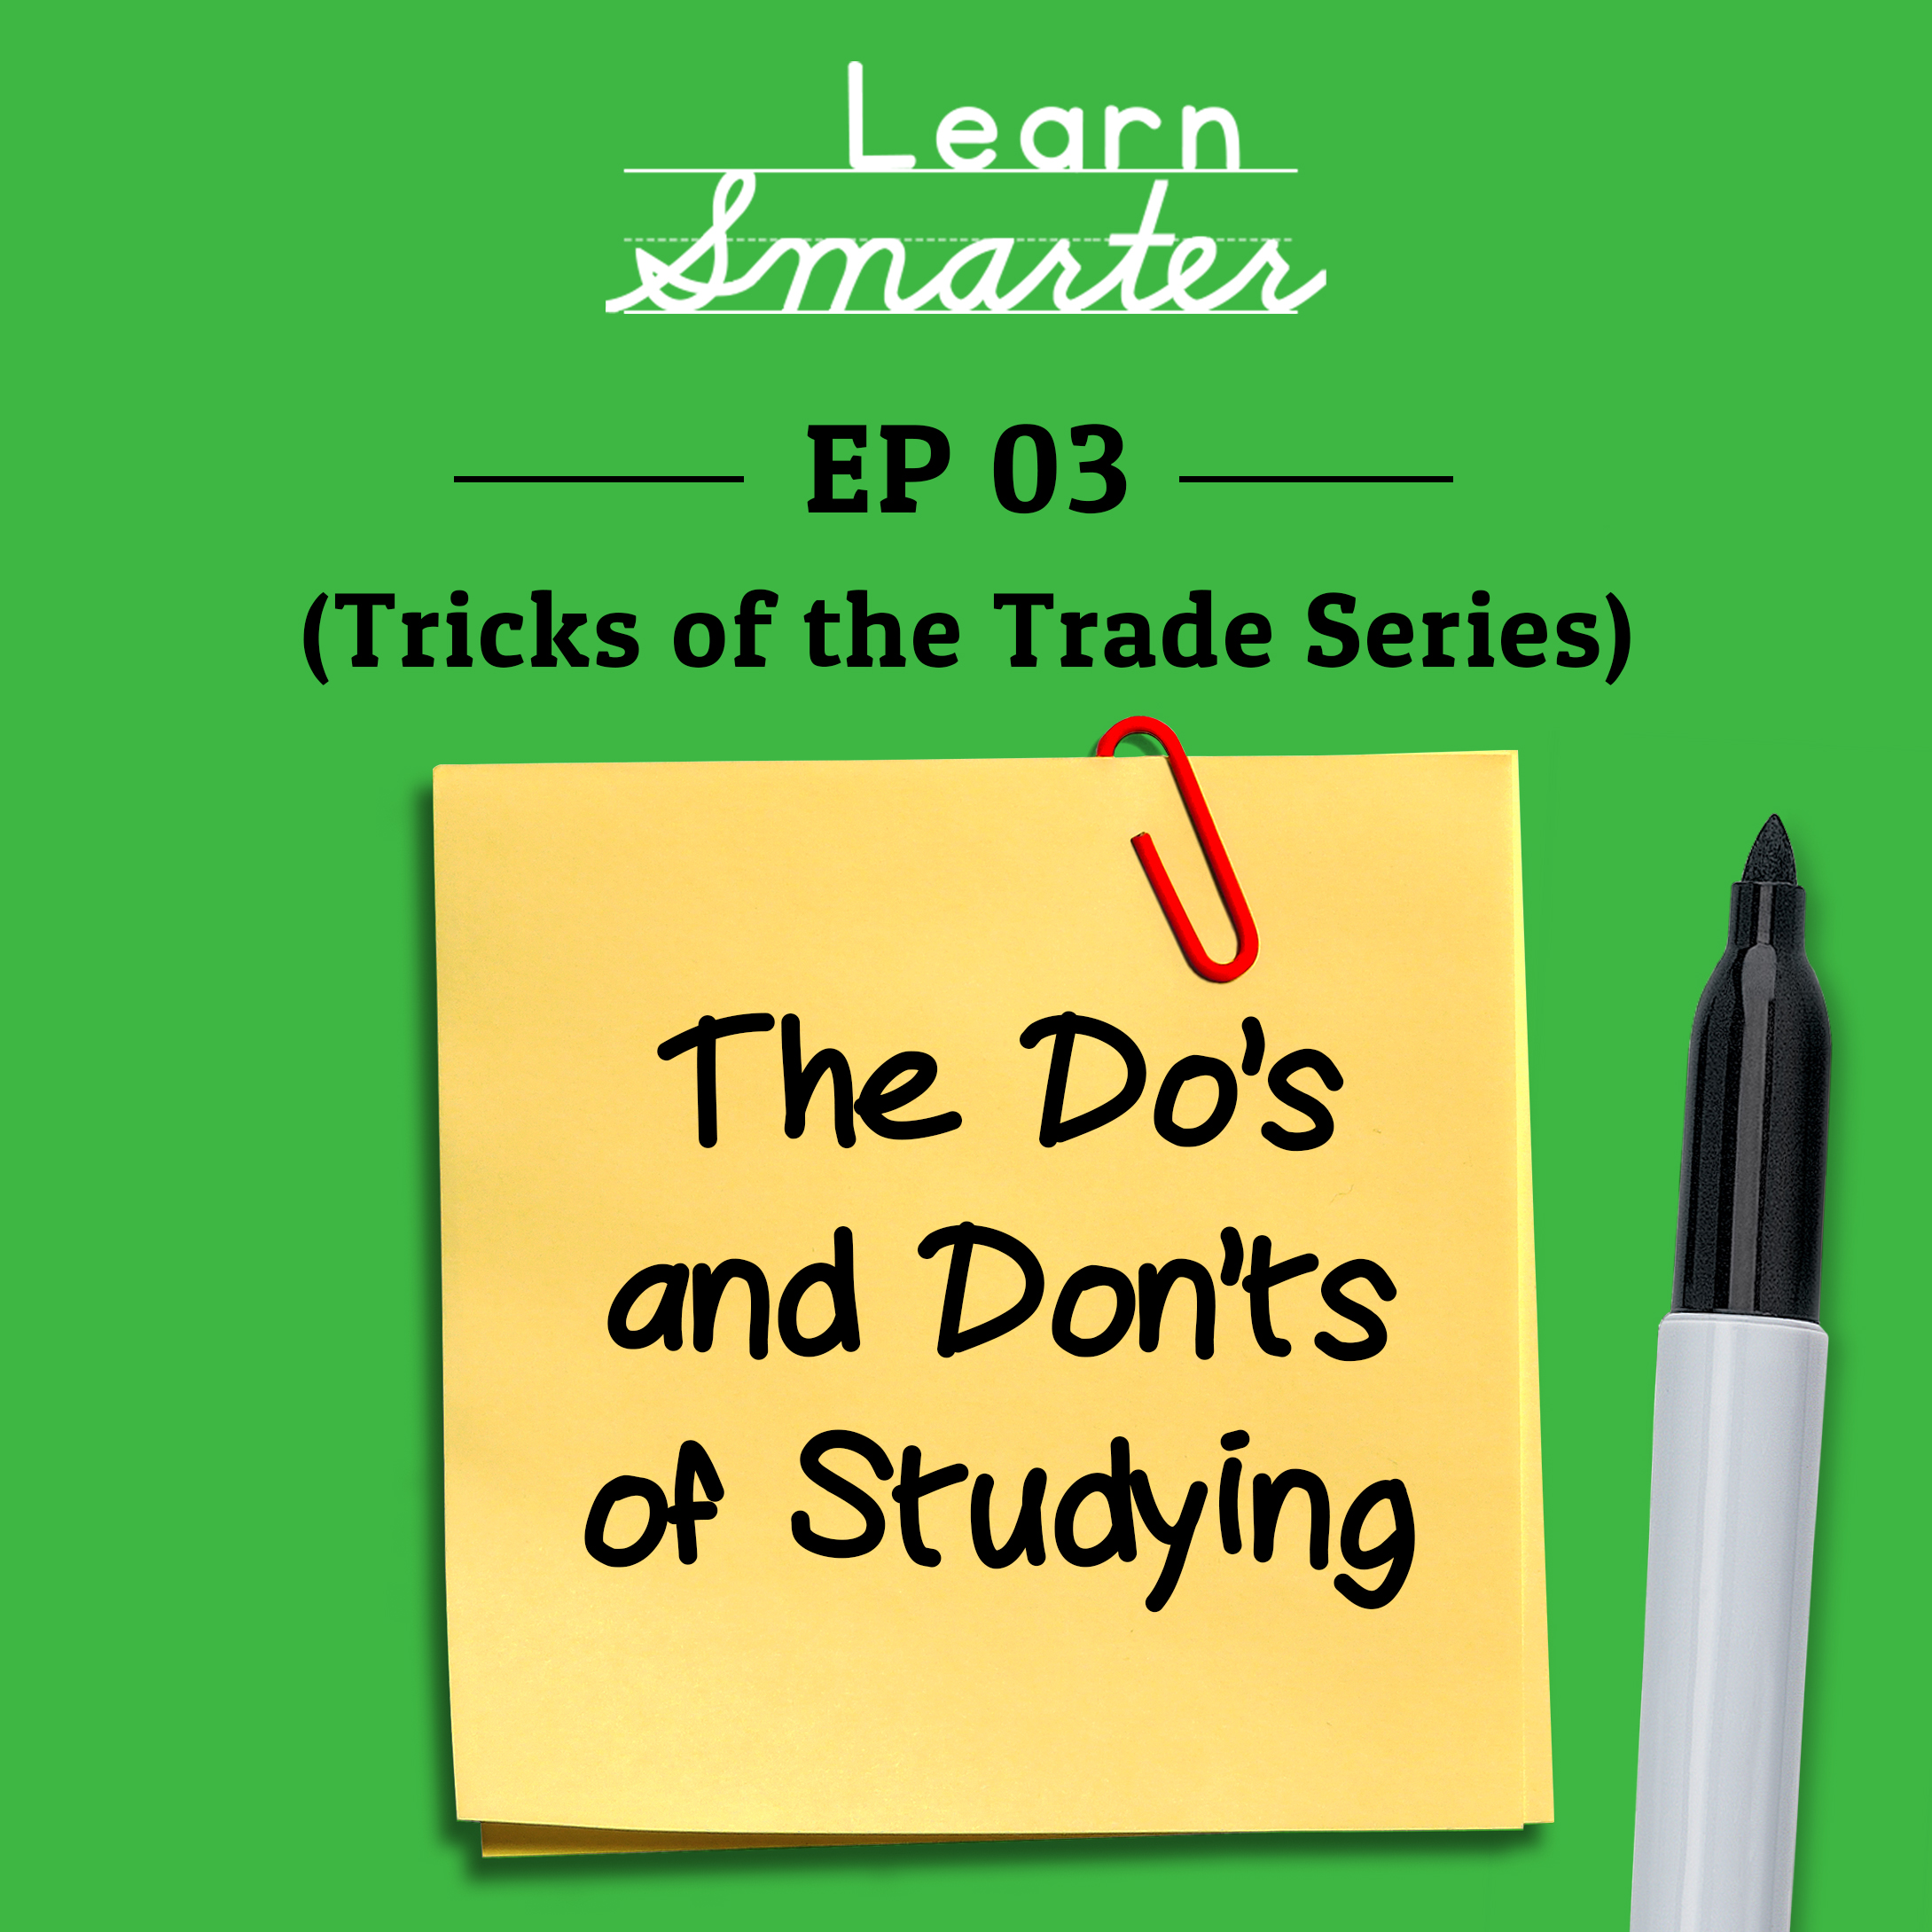 Ep 03: The Do's and Don'ts of Studying